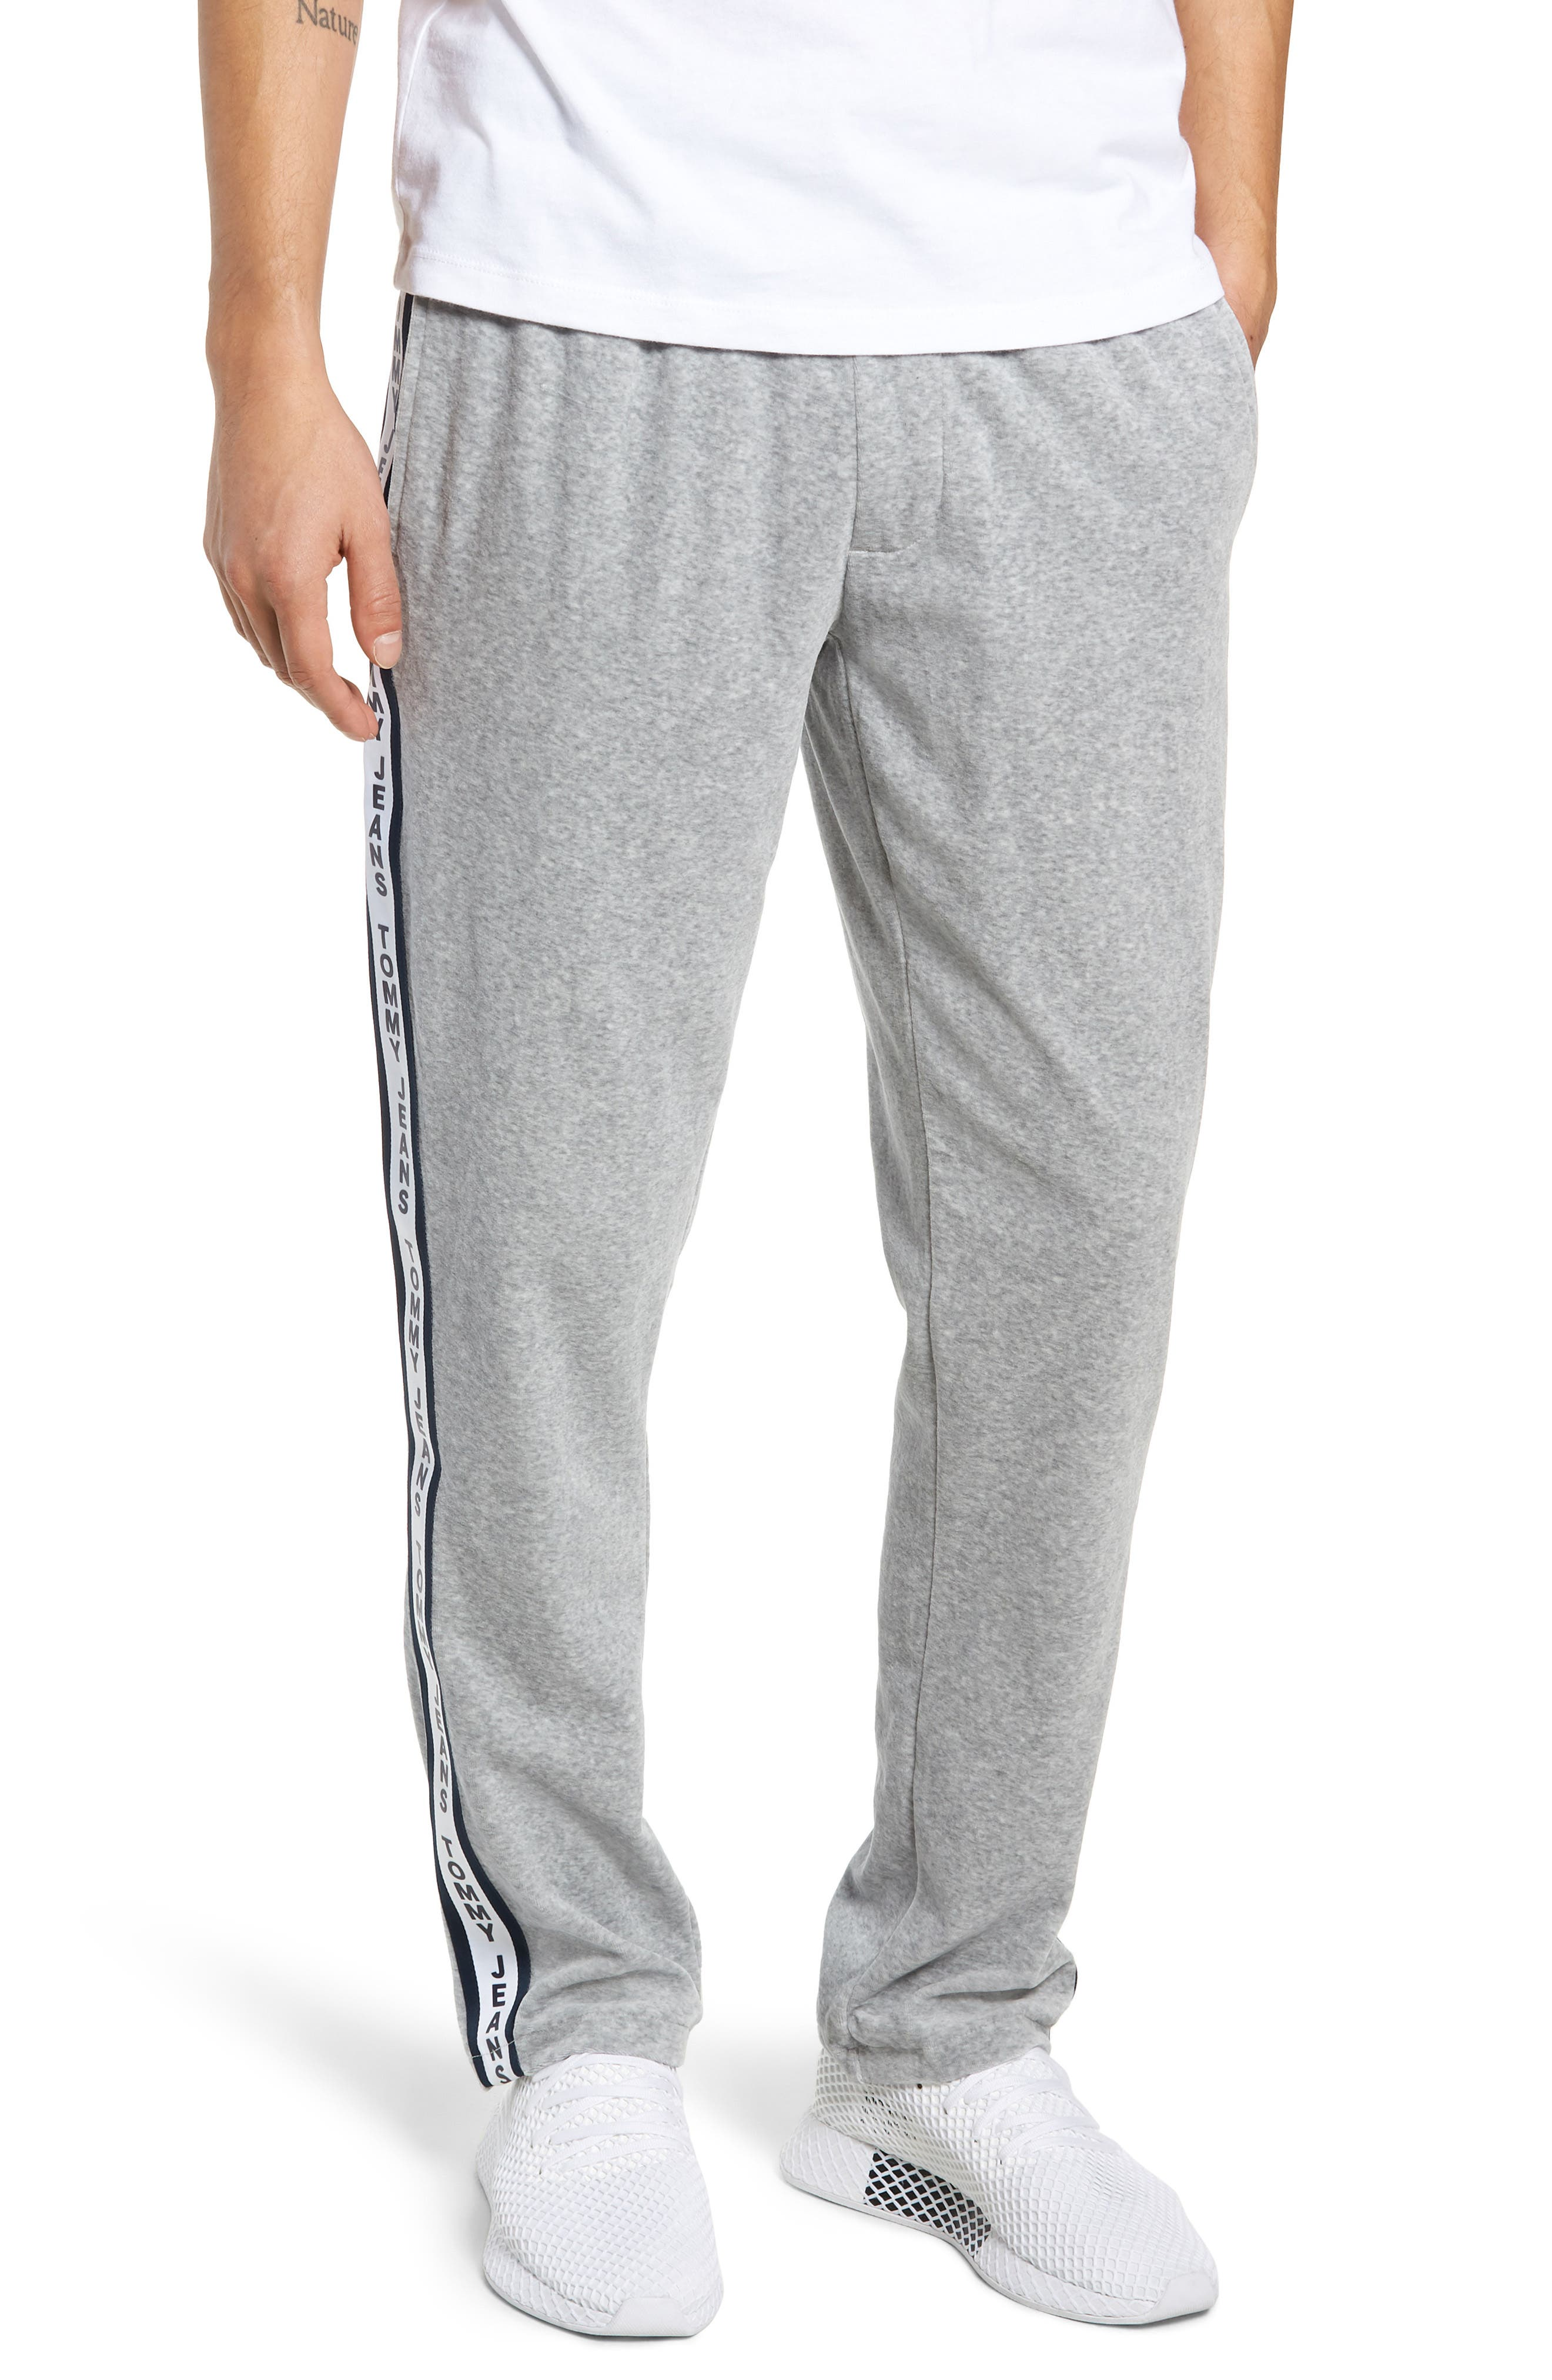 Relaxed Fit Velour Sweatpants,                         Main,                         color, LIGHT GREY HEATHER